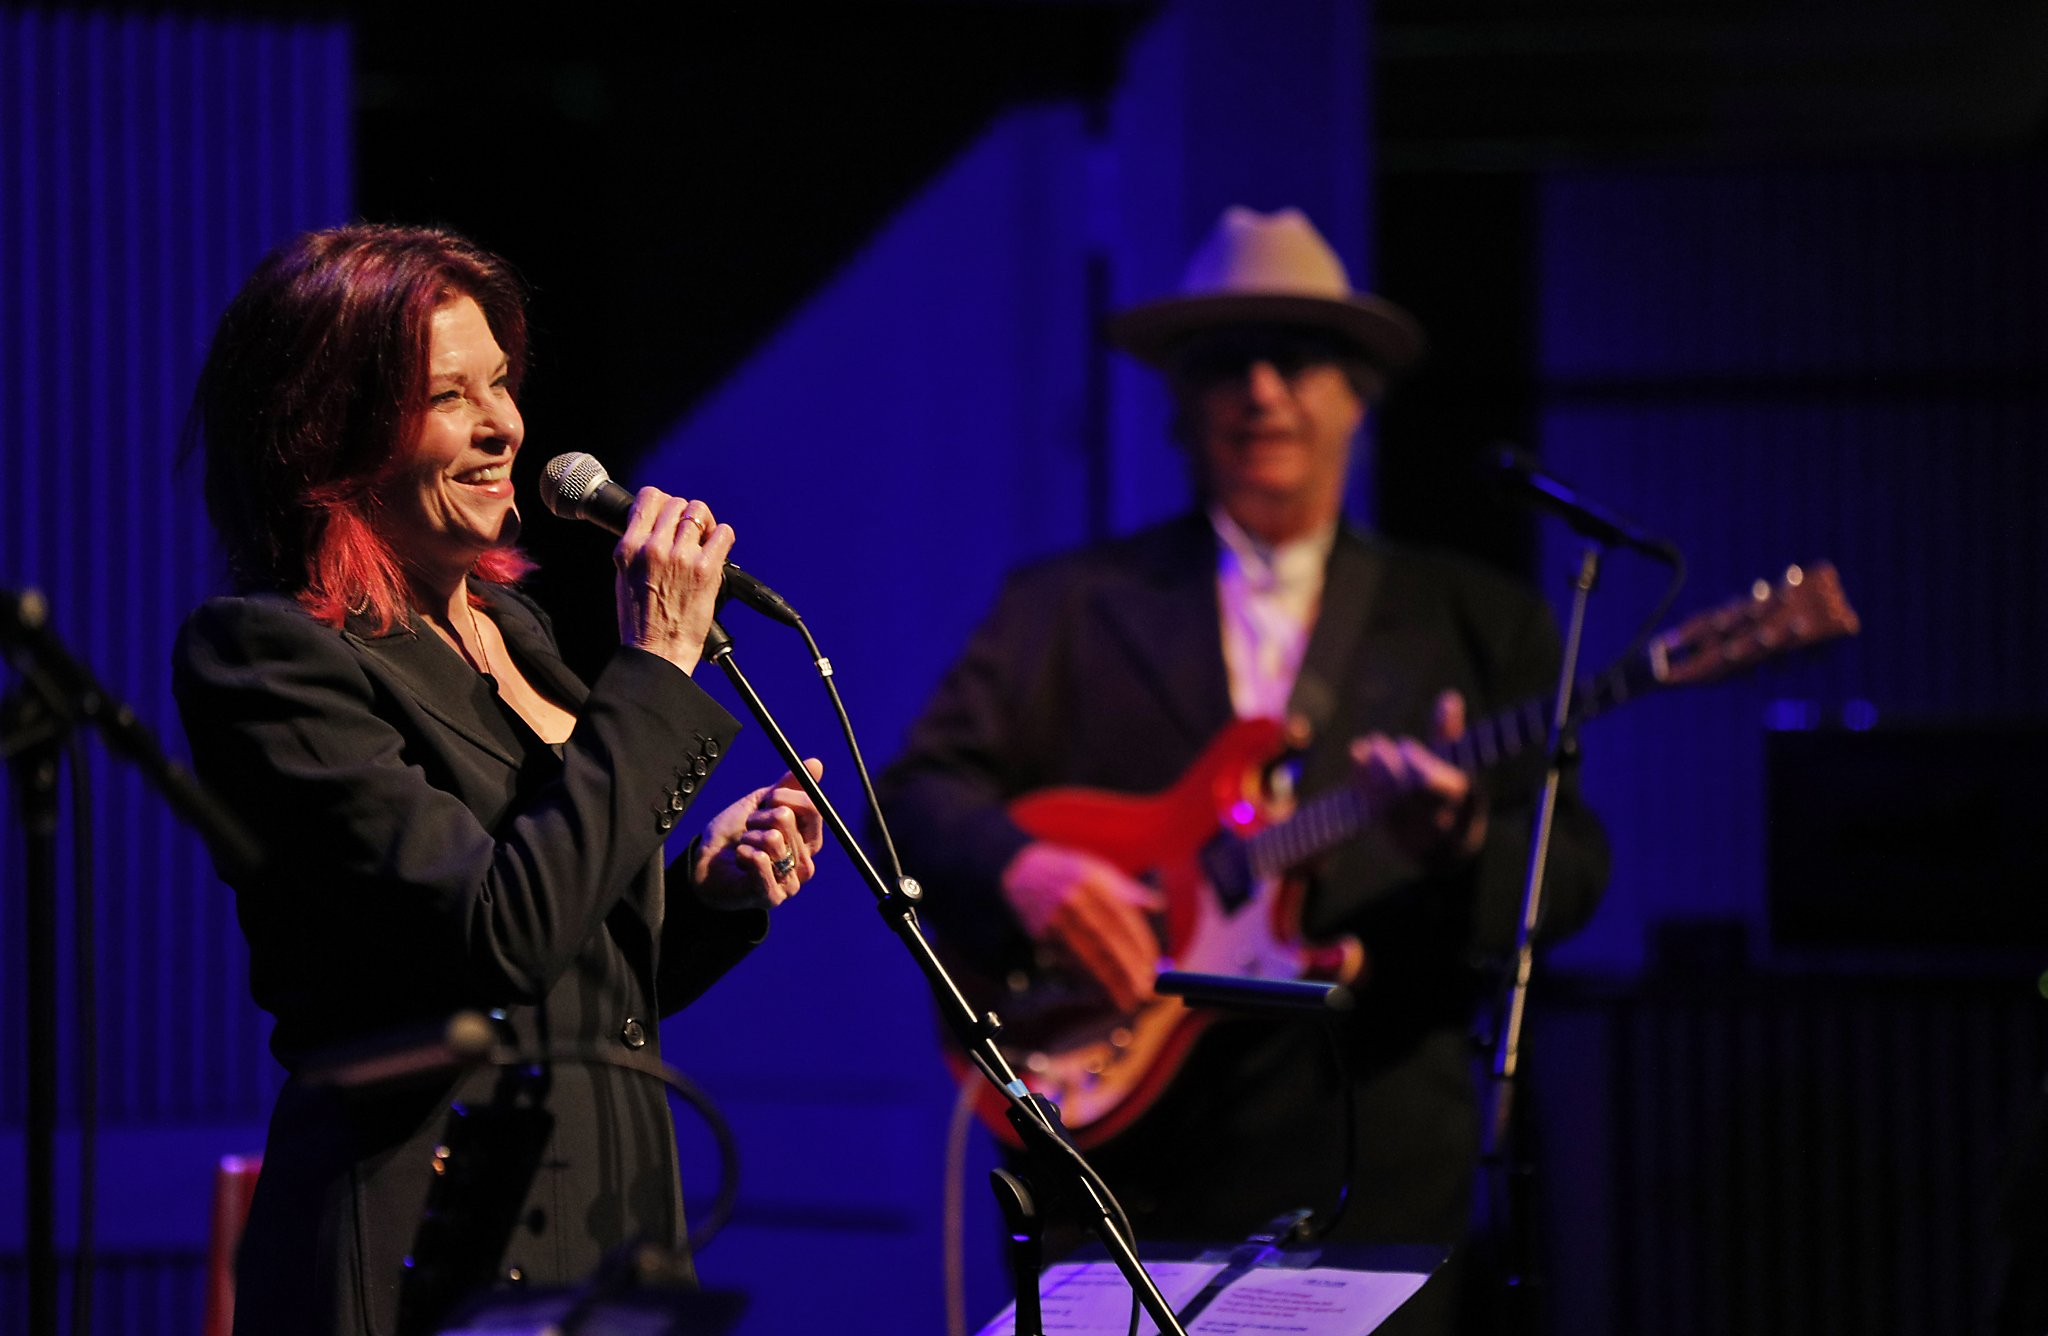 Johnny Cash Pool Song Rosanne Cash Channels Johnny With Ry Cooder At Her Side At Sfjazz